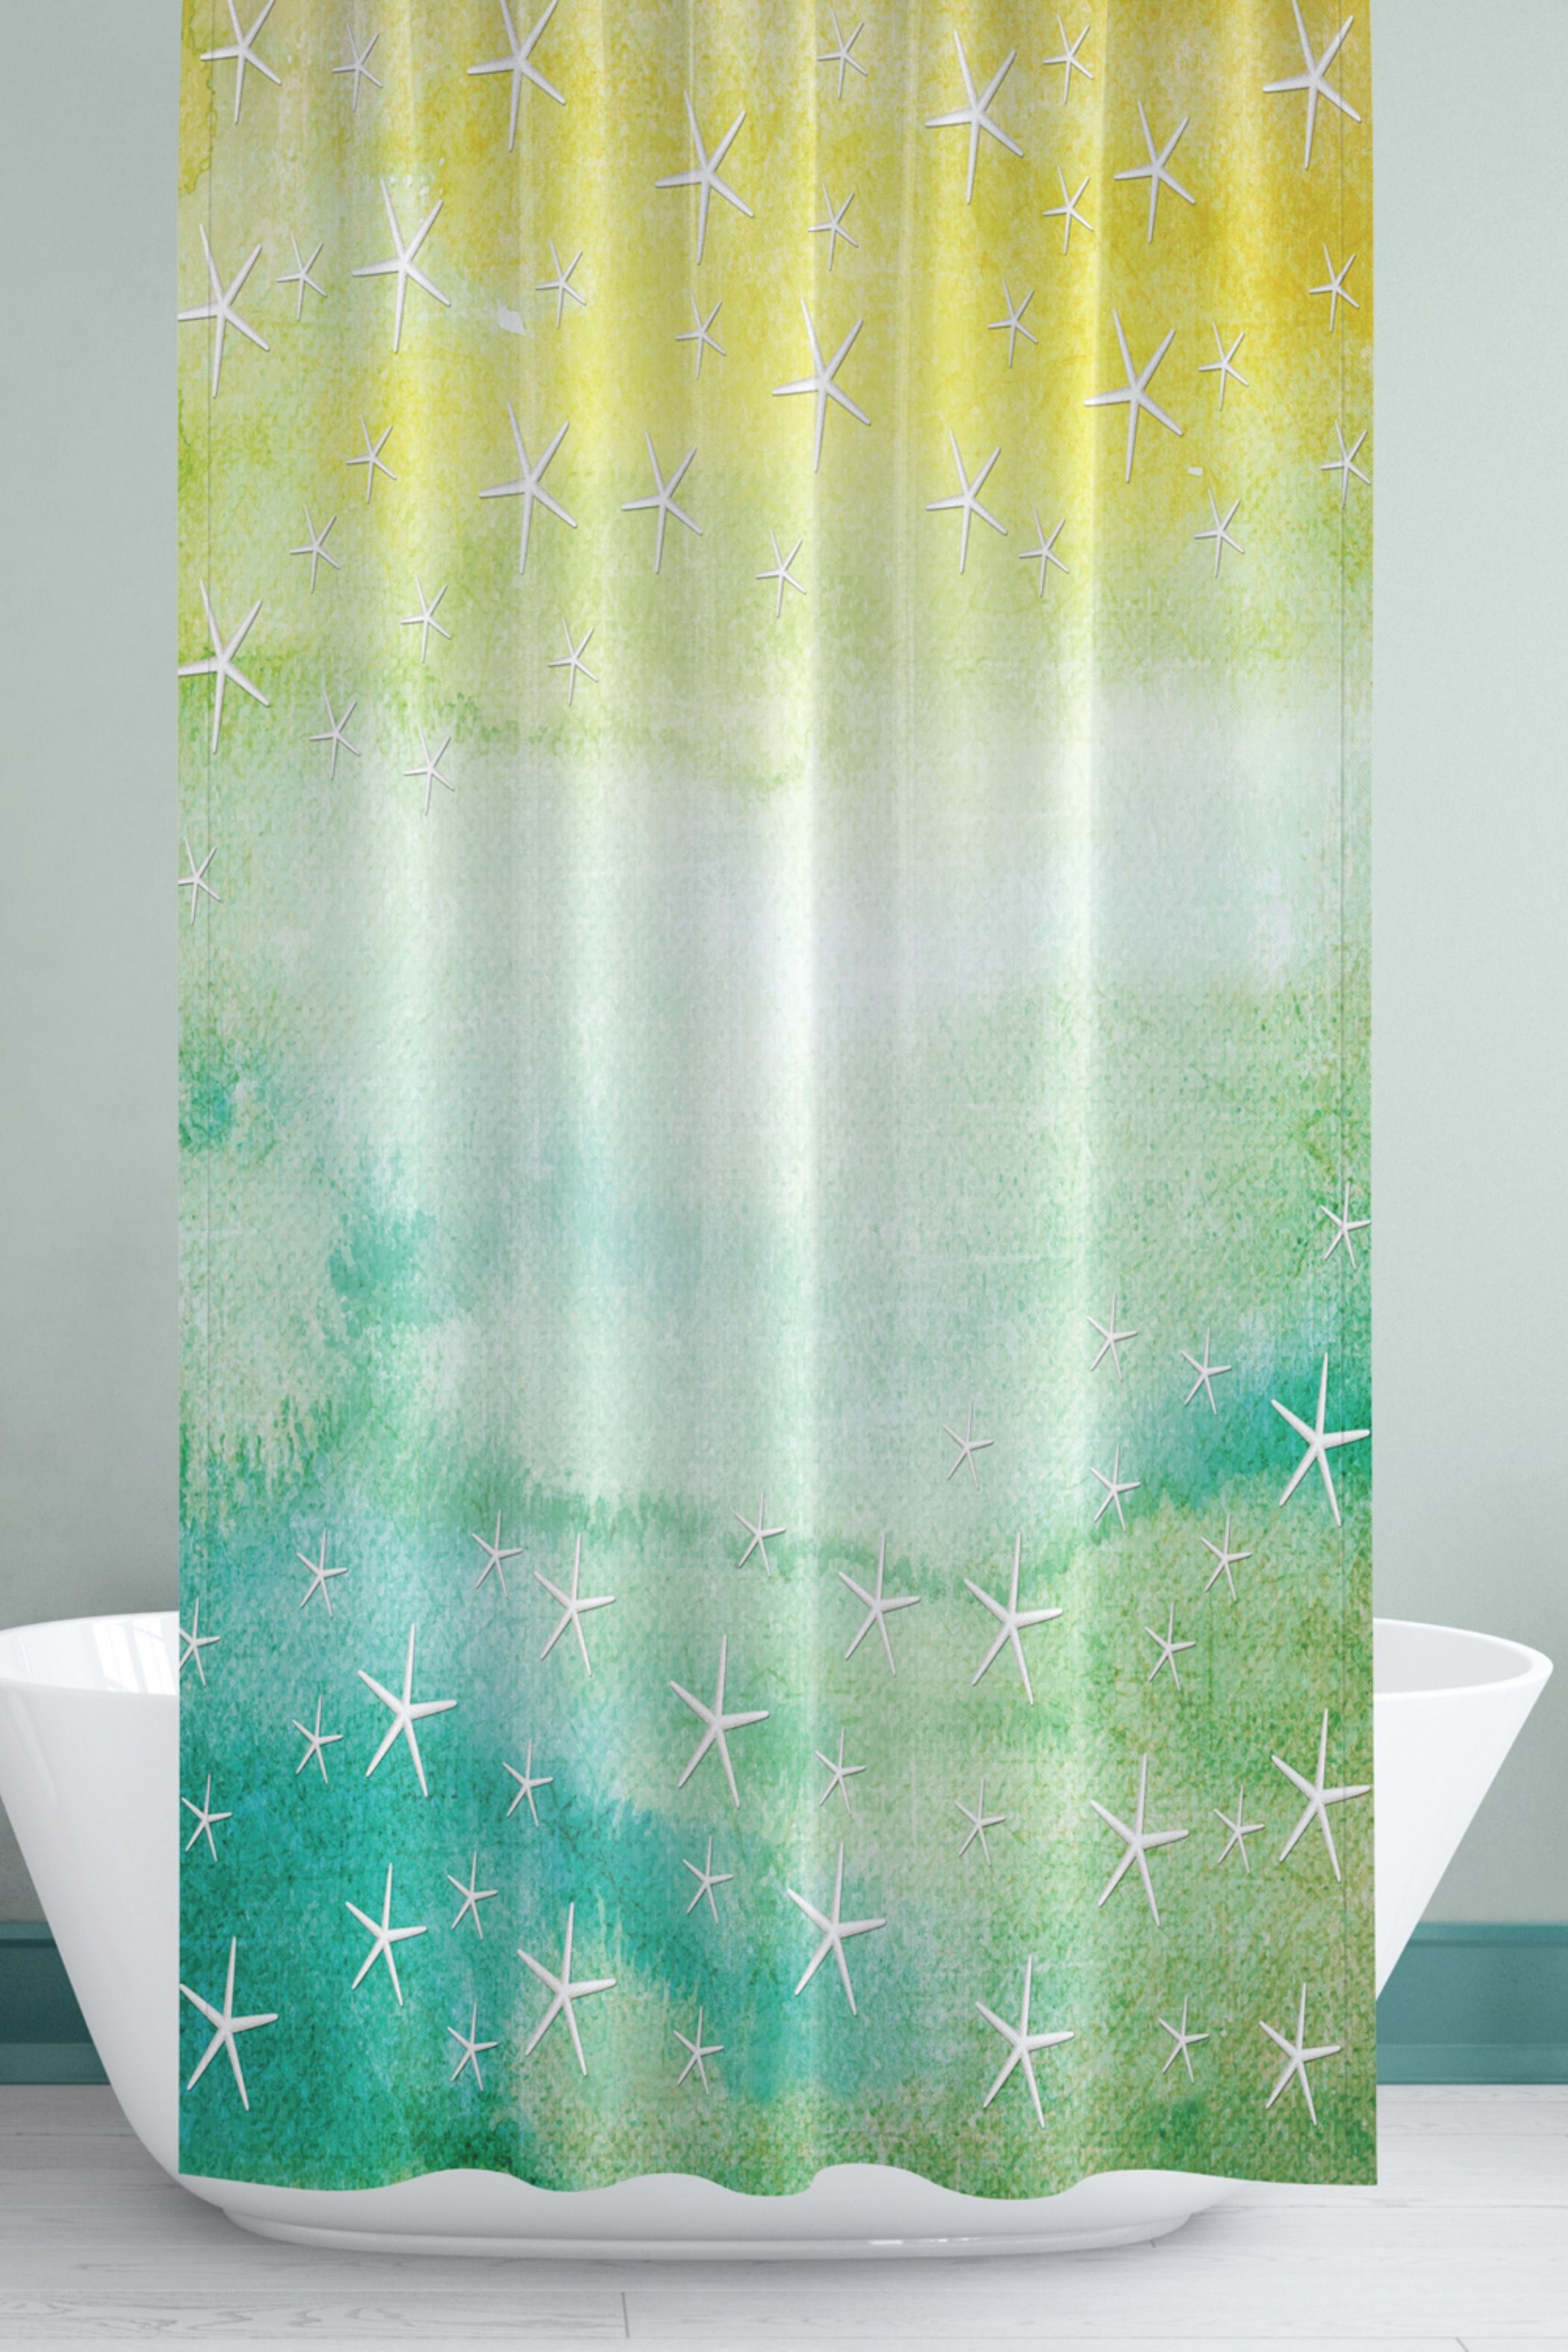 Abstract Shower Curtain With White Starfish Aqua And Green